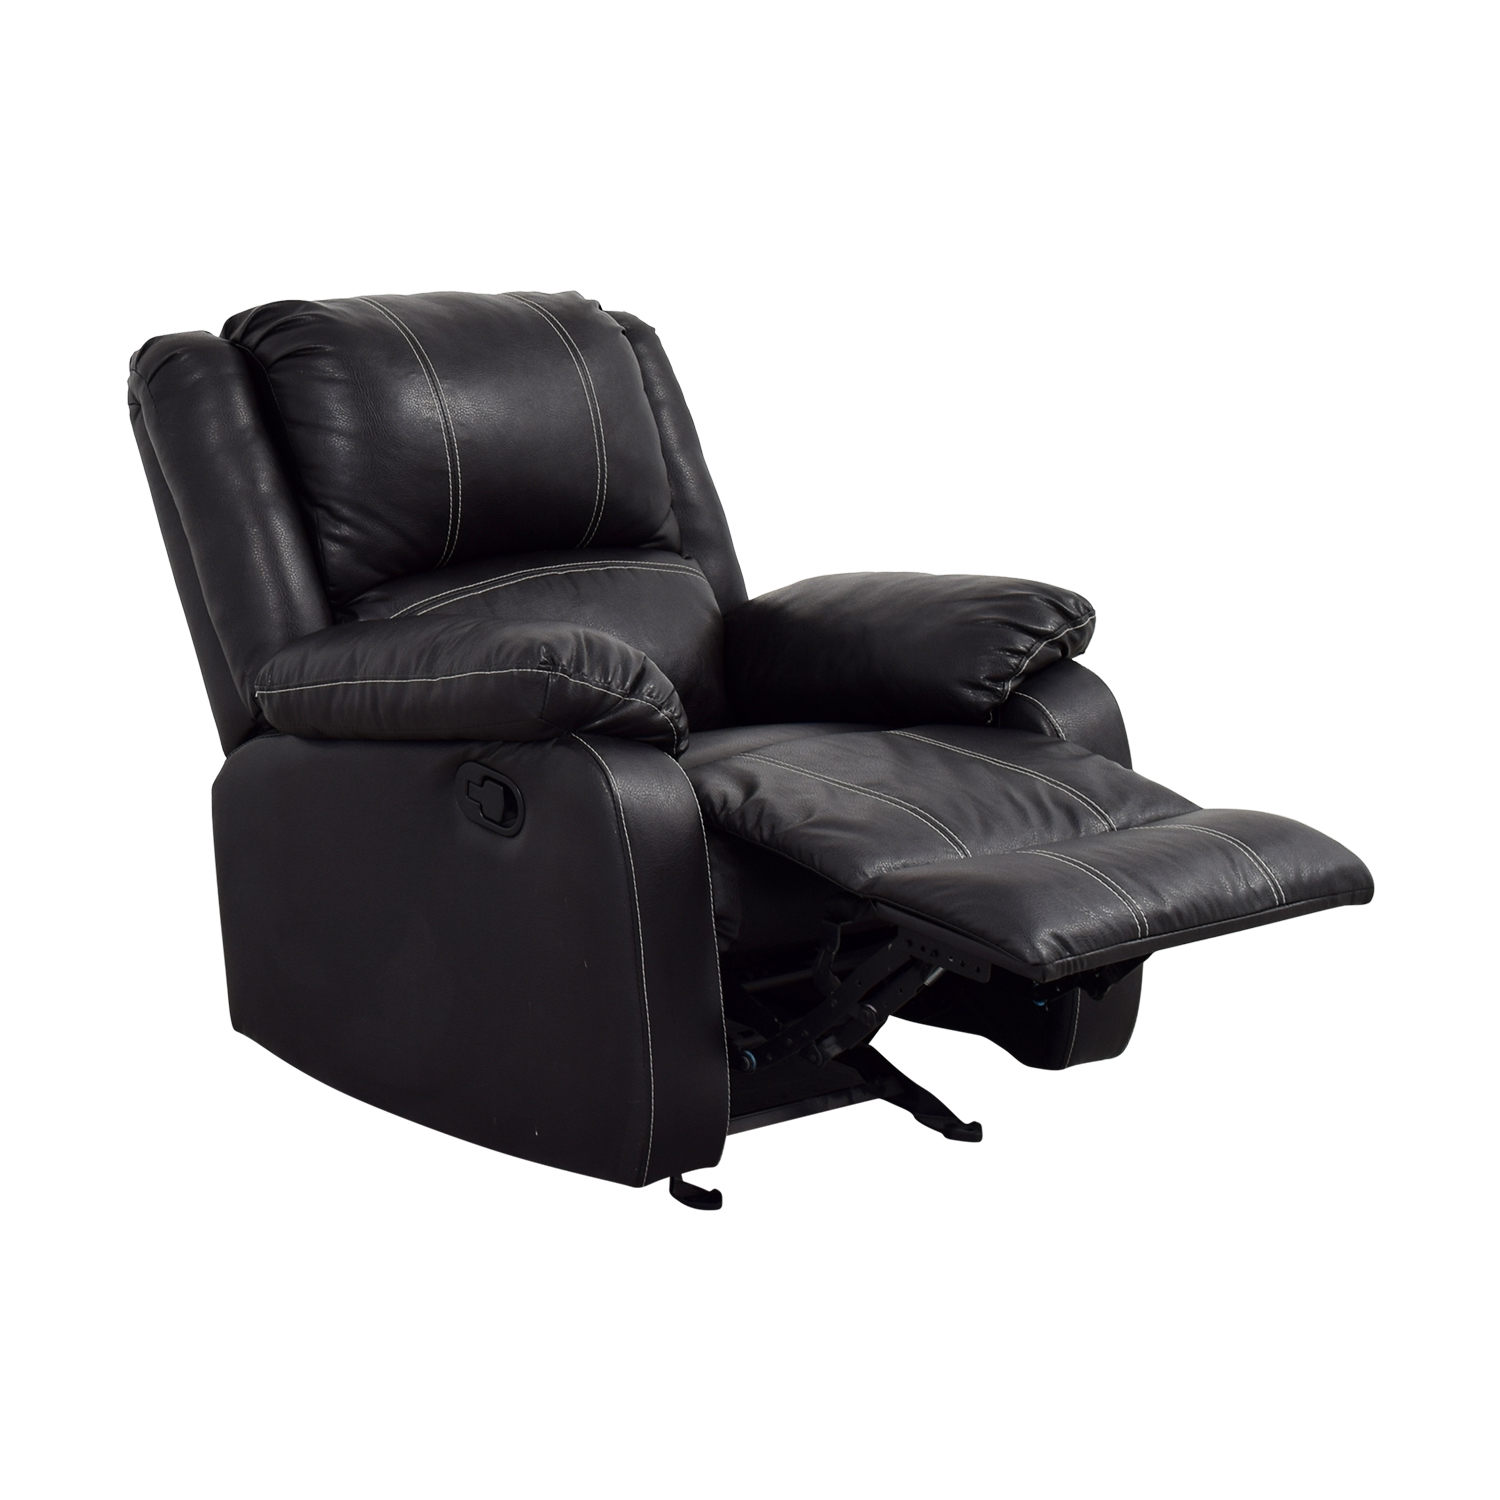 Acme Acme Black Leather Recliner Chairs